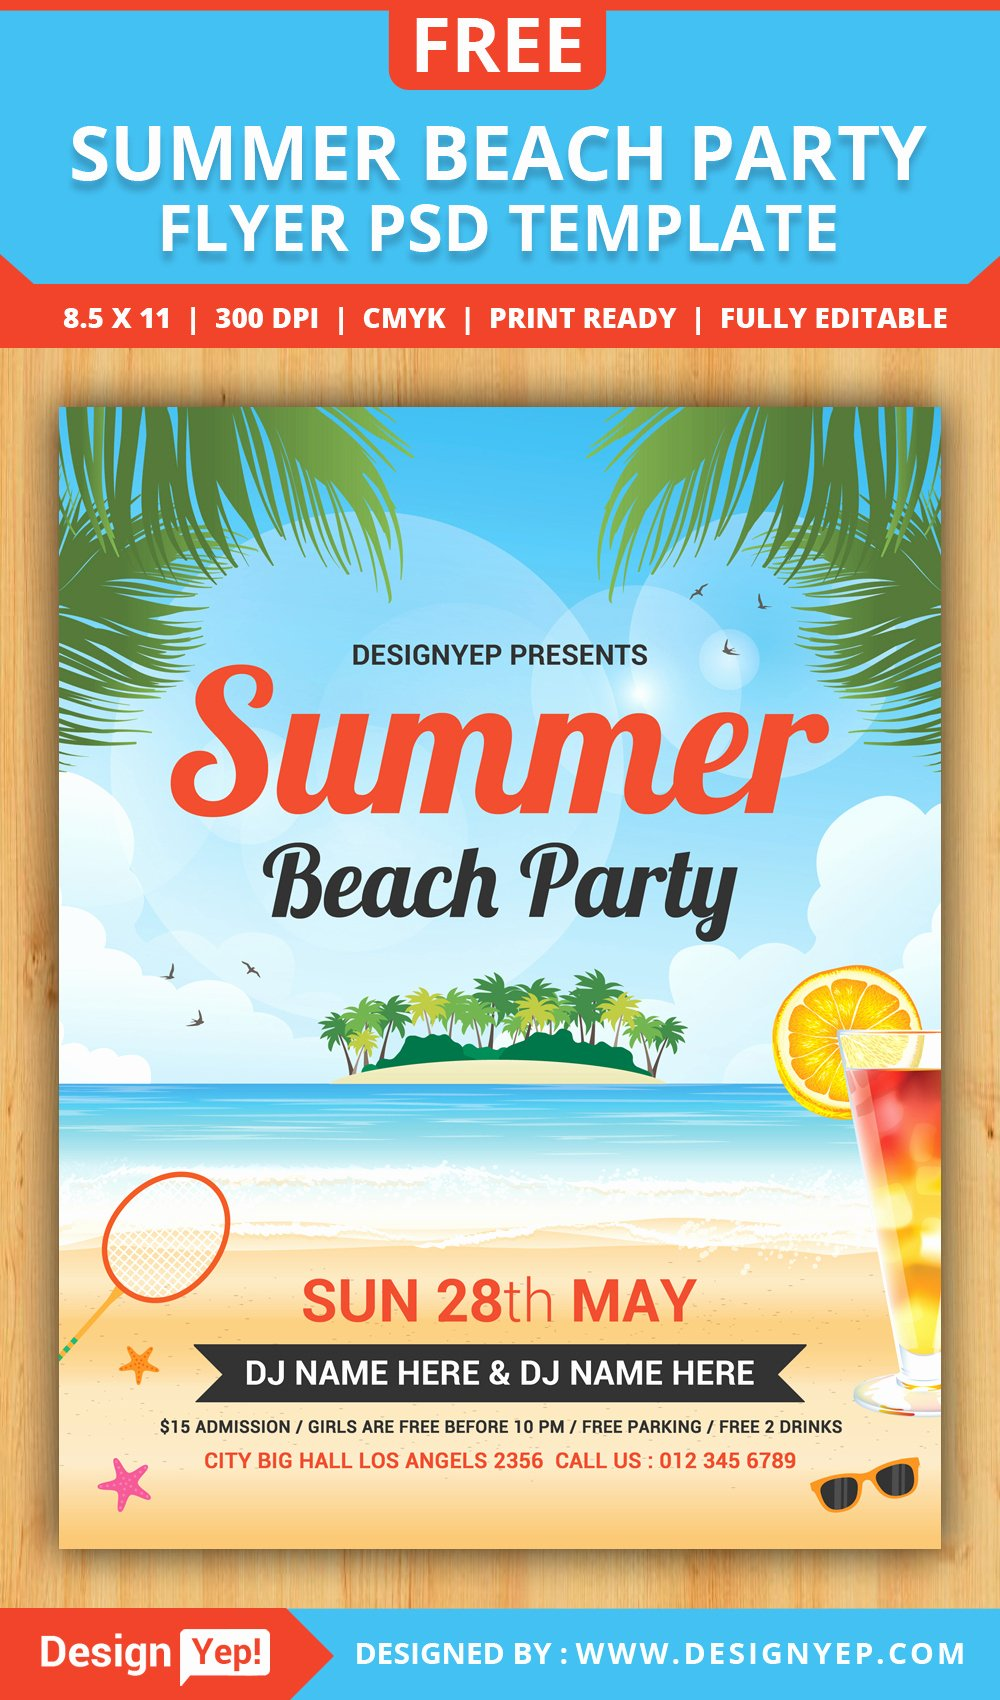 Event Flyer Templates Free Awesome Free Summer Beach Party Flyer Psd Template Designyep